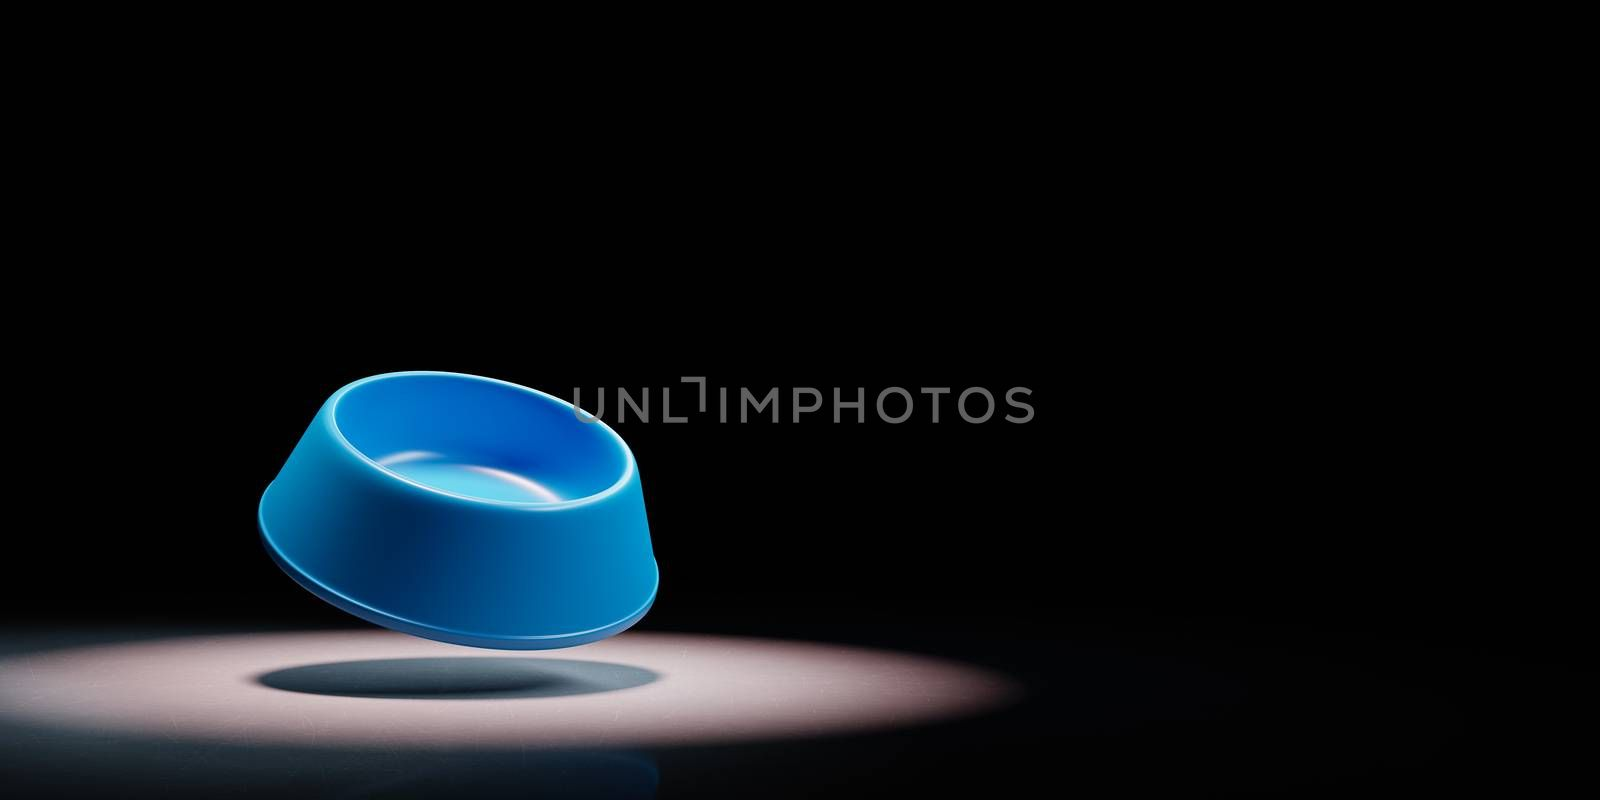 Empty Blue Plastic Pets Bowl Spotlighted on Black Background with Copy Space 3D Illustration